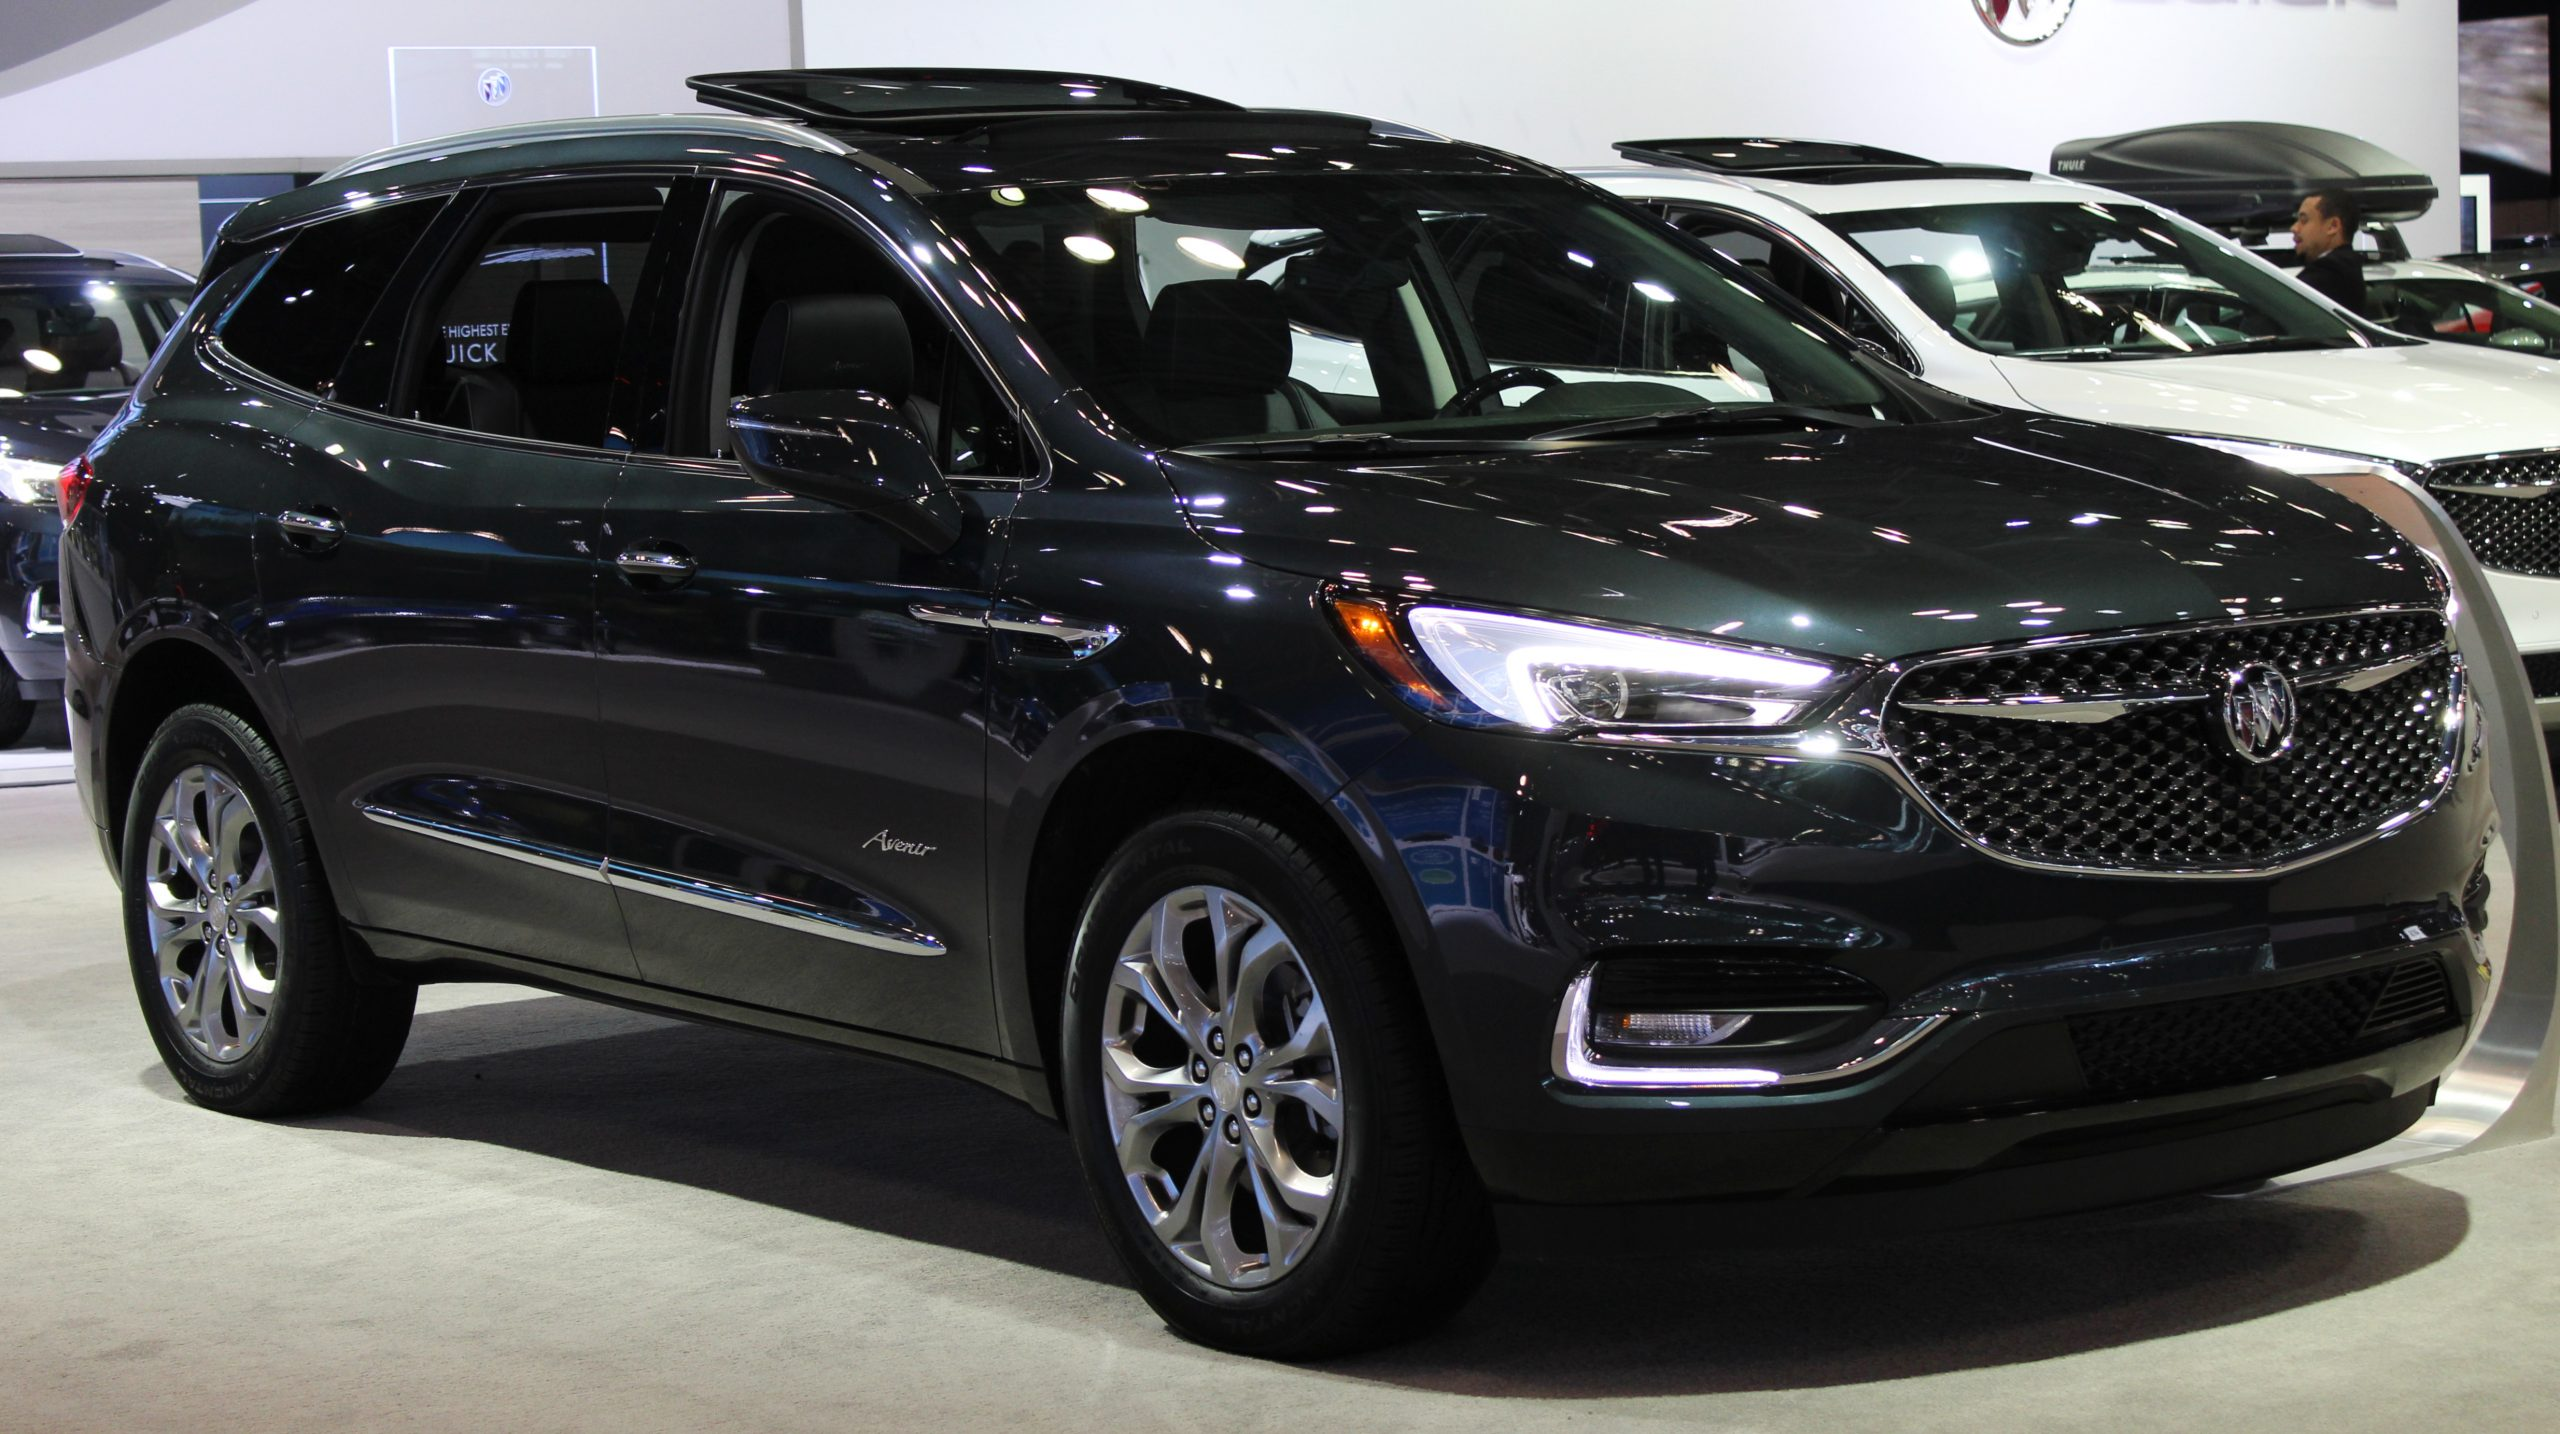 Buick Enclave - Wikipedia 2022 Buick Enclave Fuel Economy, Fog Lights, Gas Mileage